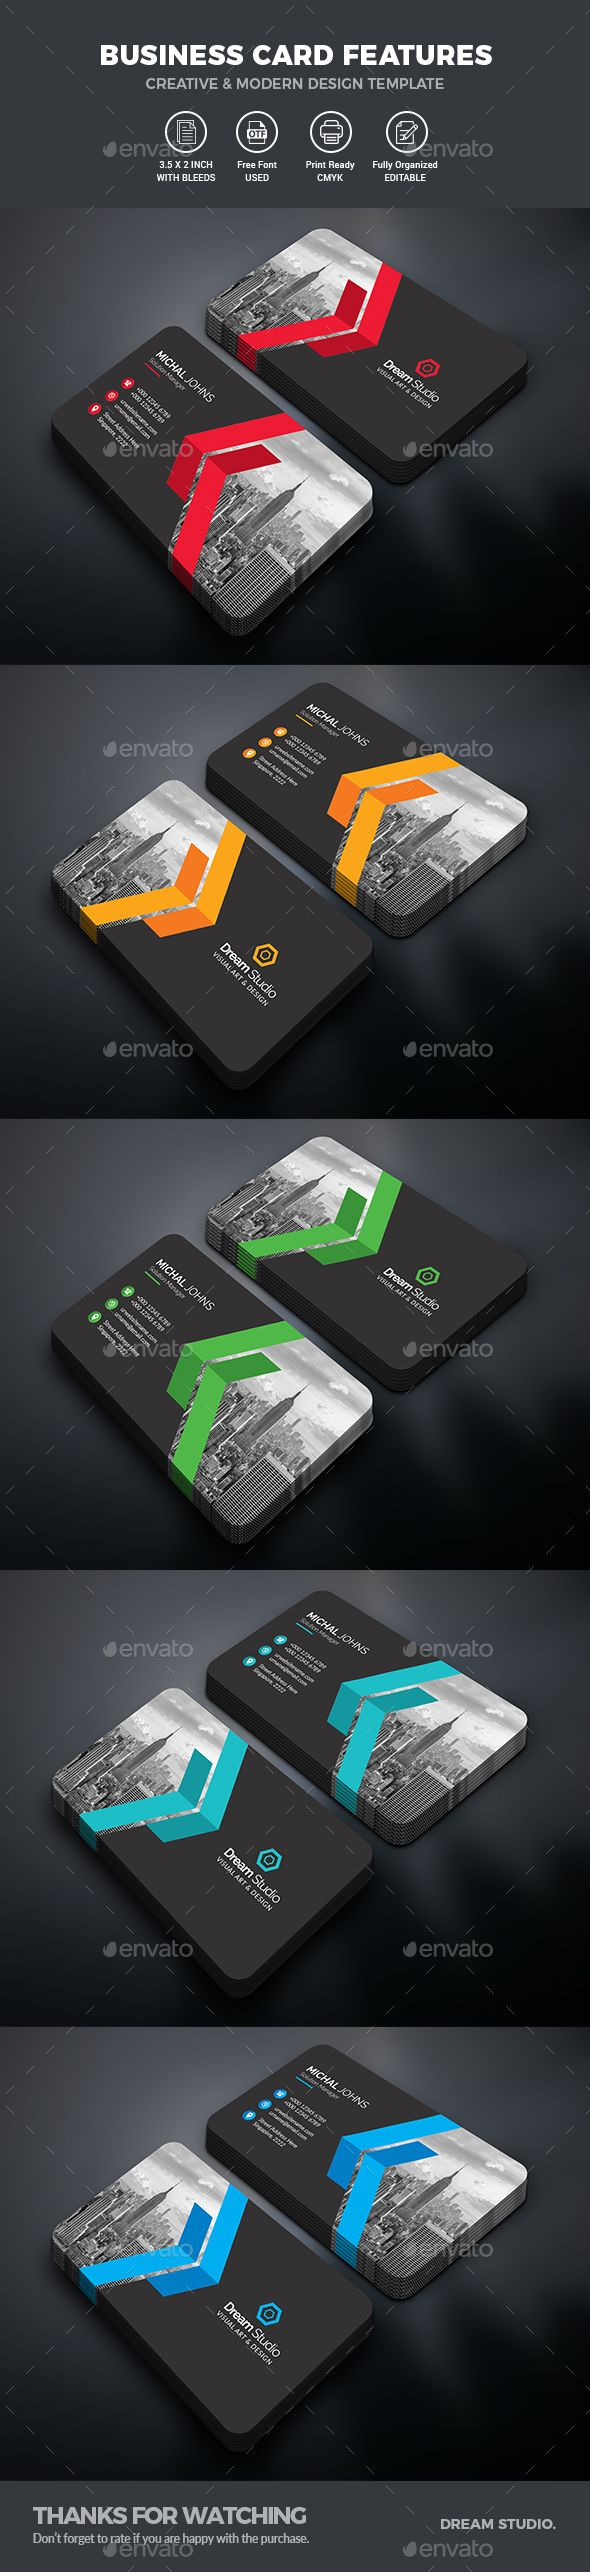 Business card business cards business and print templates reheart Choice Image